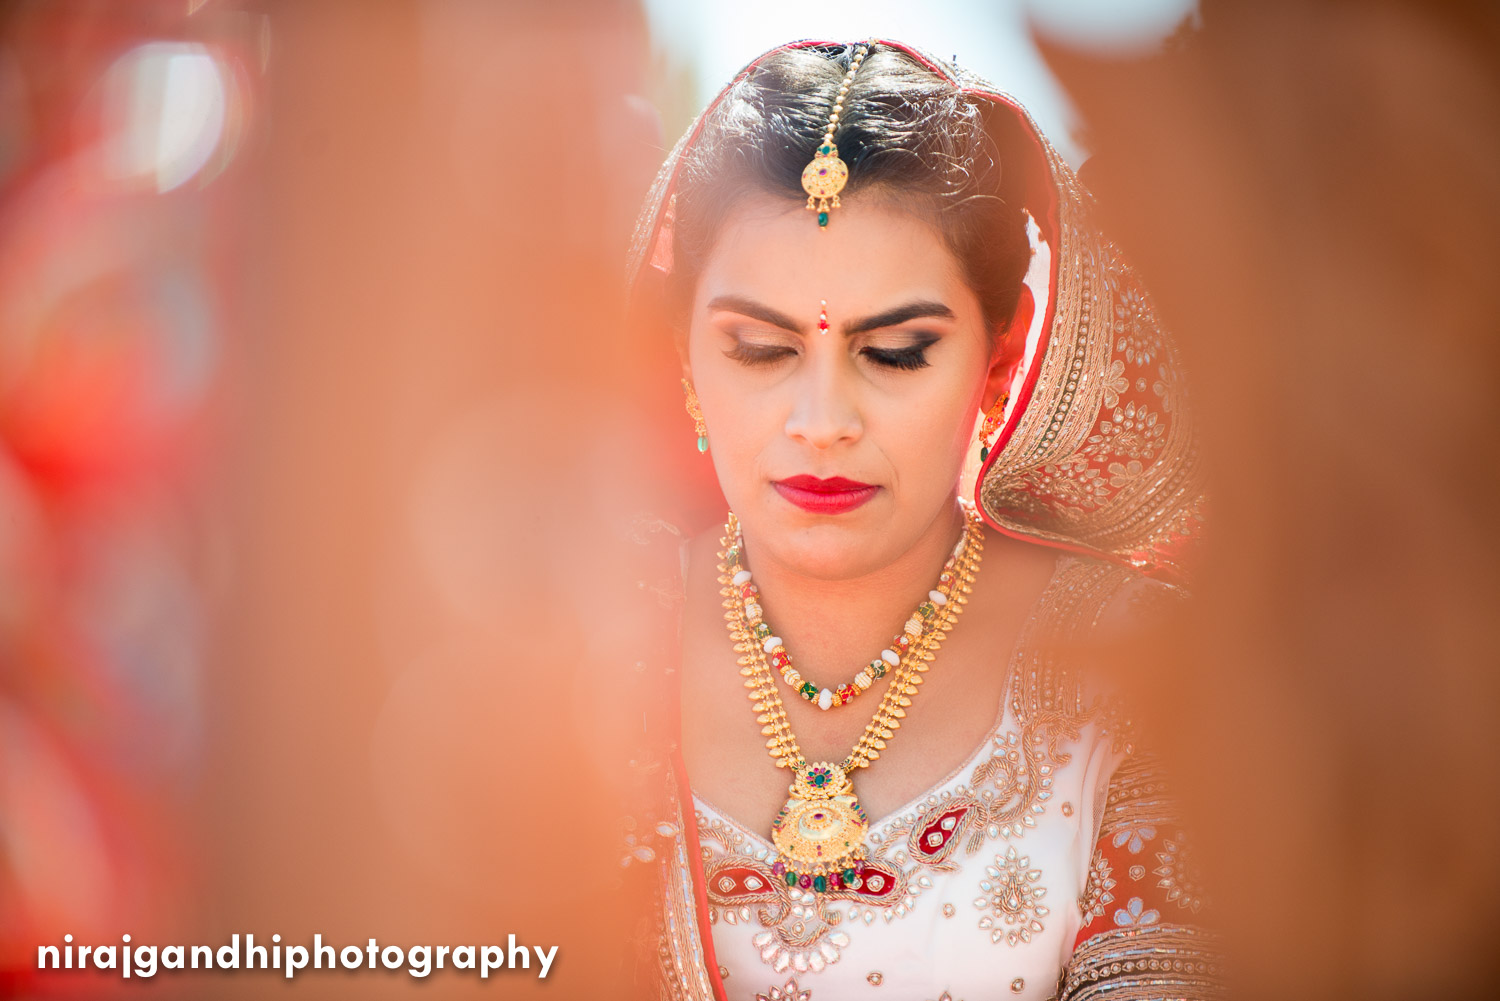 Arpita + Neel's Wedding-439.jpg